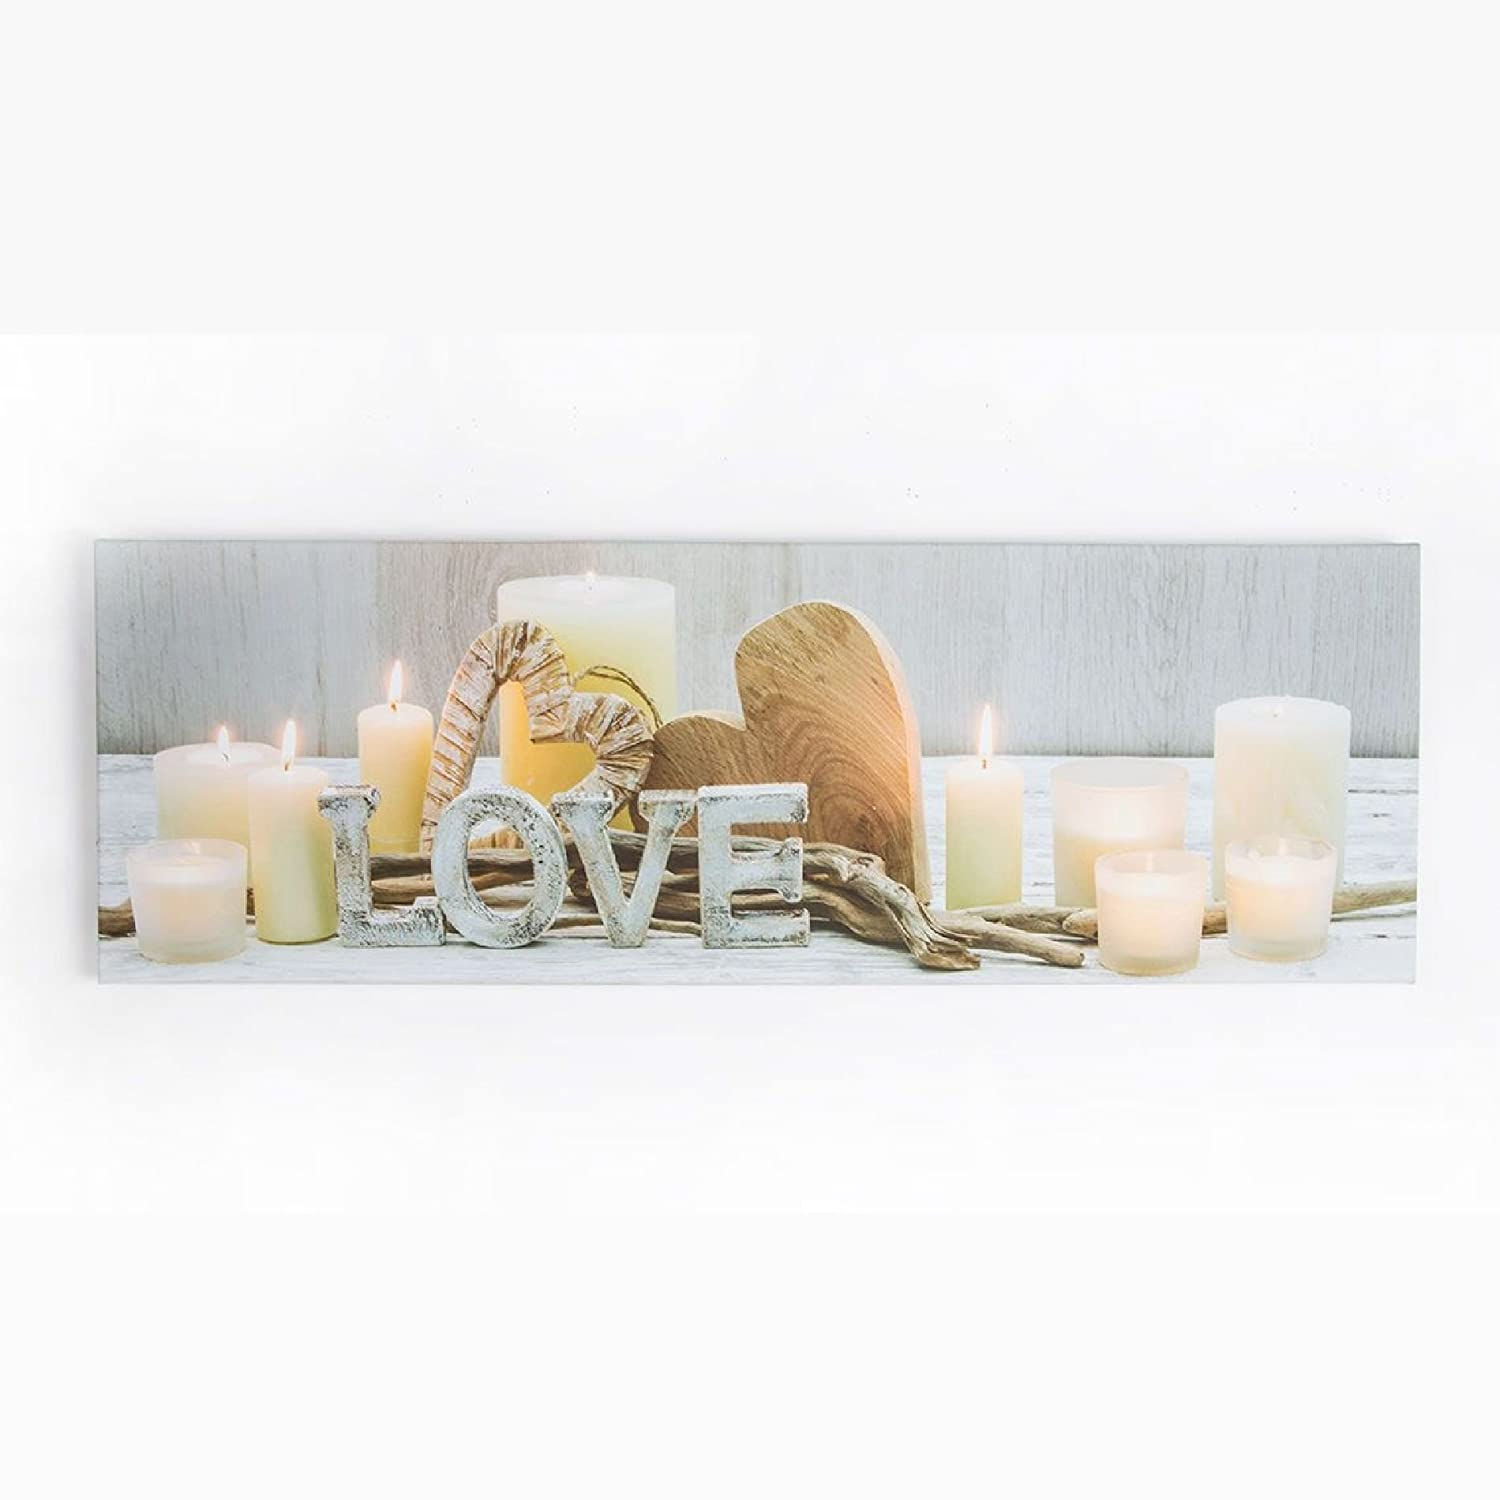 Art for Home Love Led Printed Canvas Graham & Brown 41-841